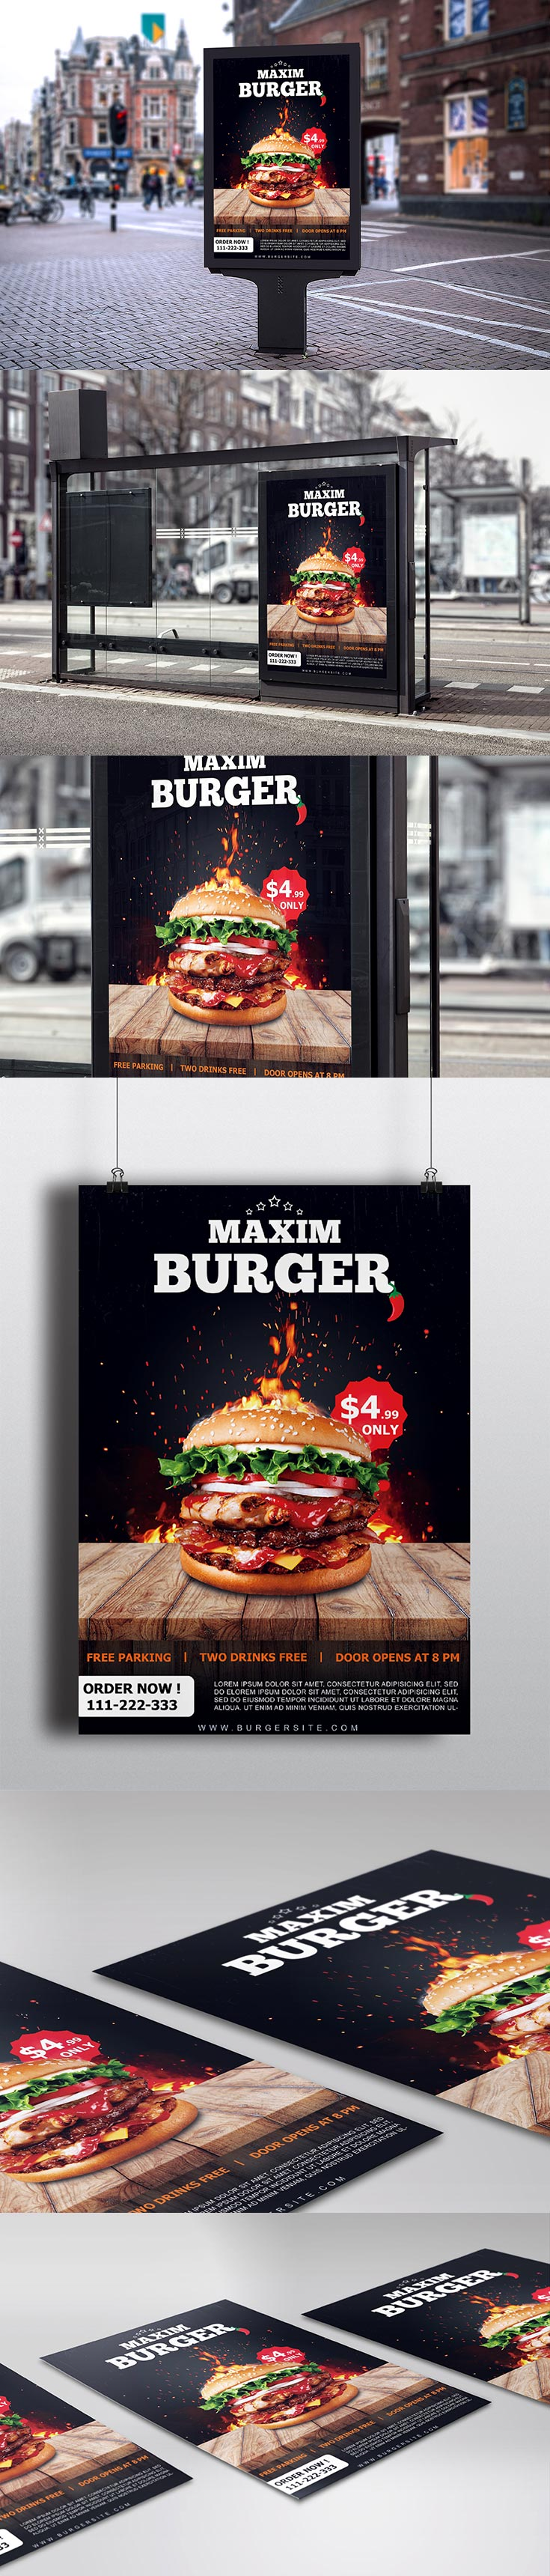 Free Burger Restaurant Flyer PSD Template